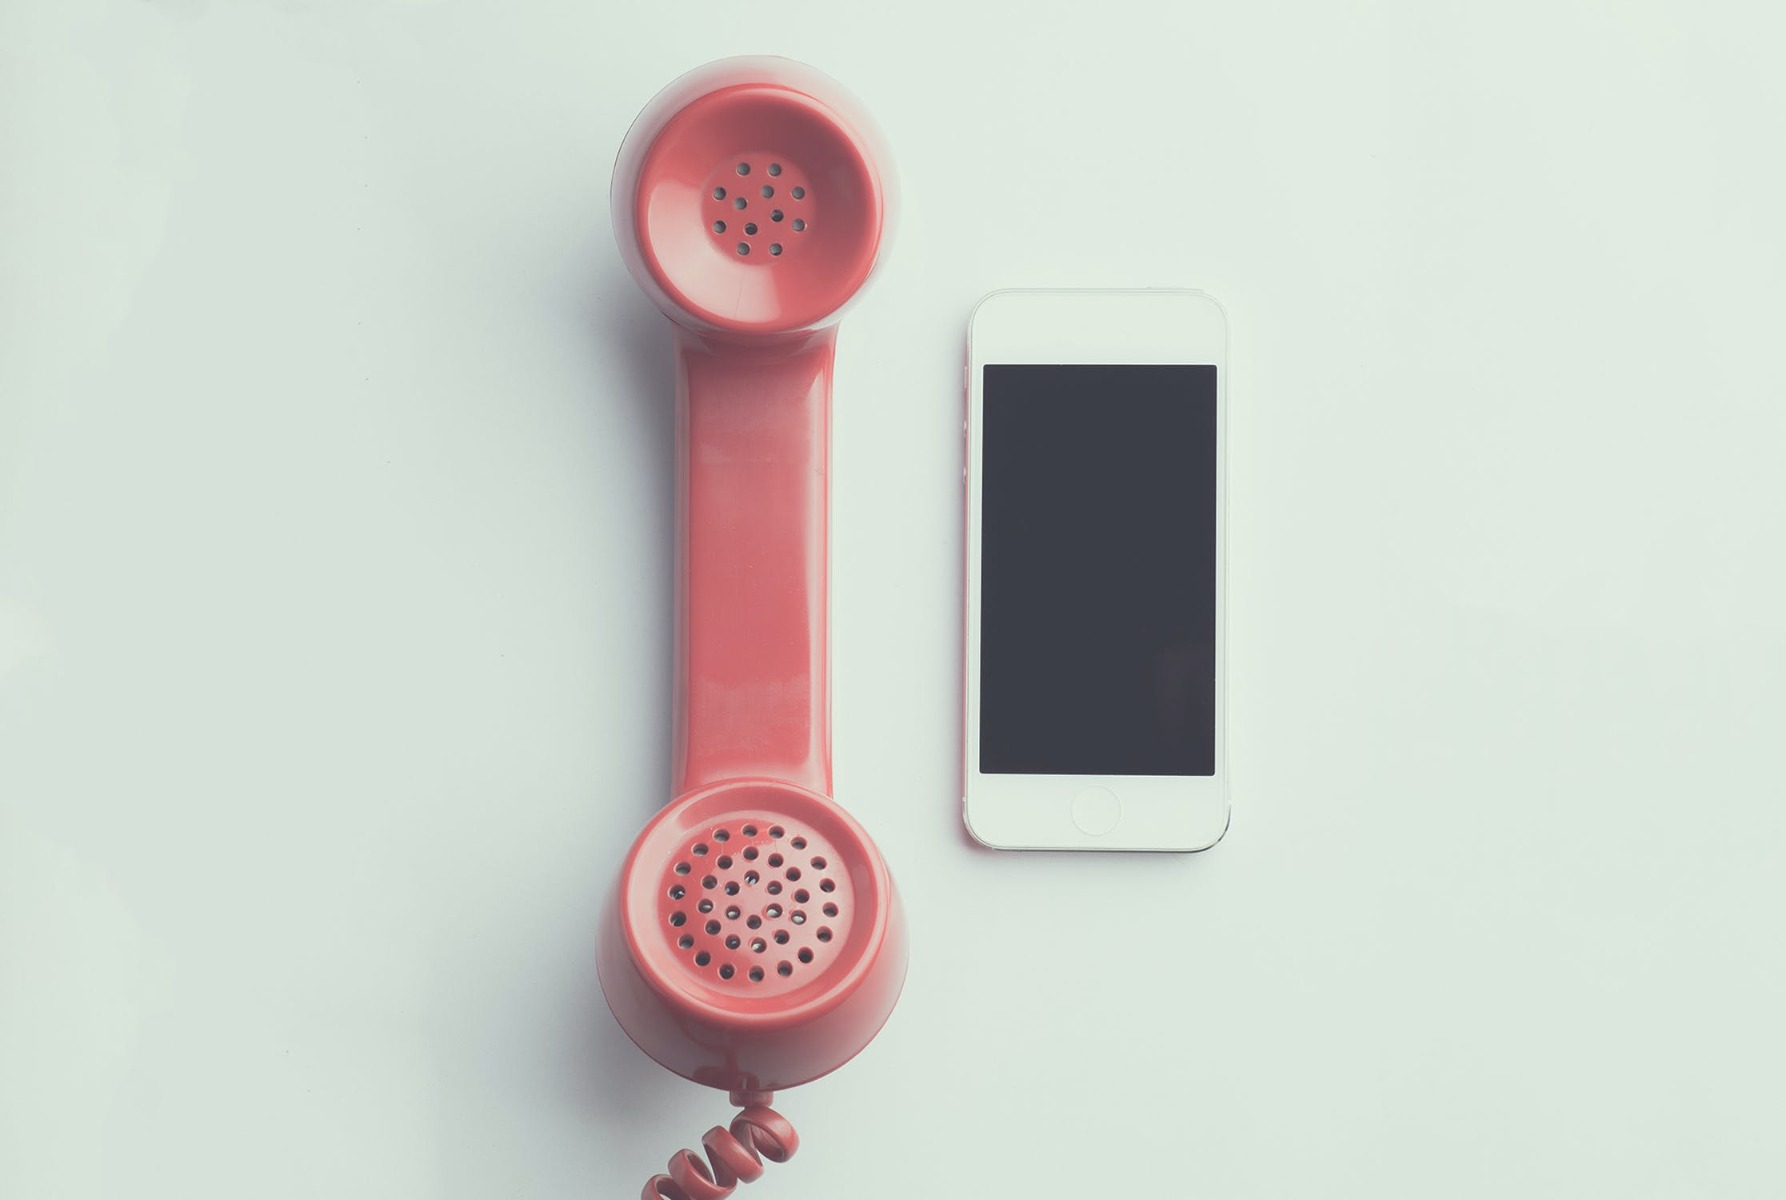 An old red phone next to an iPhone